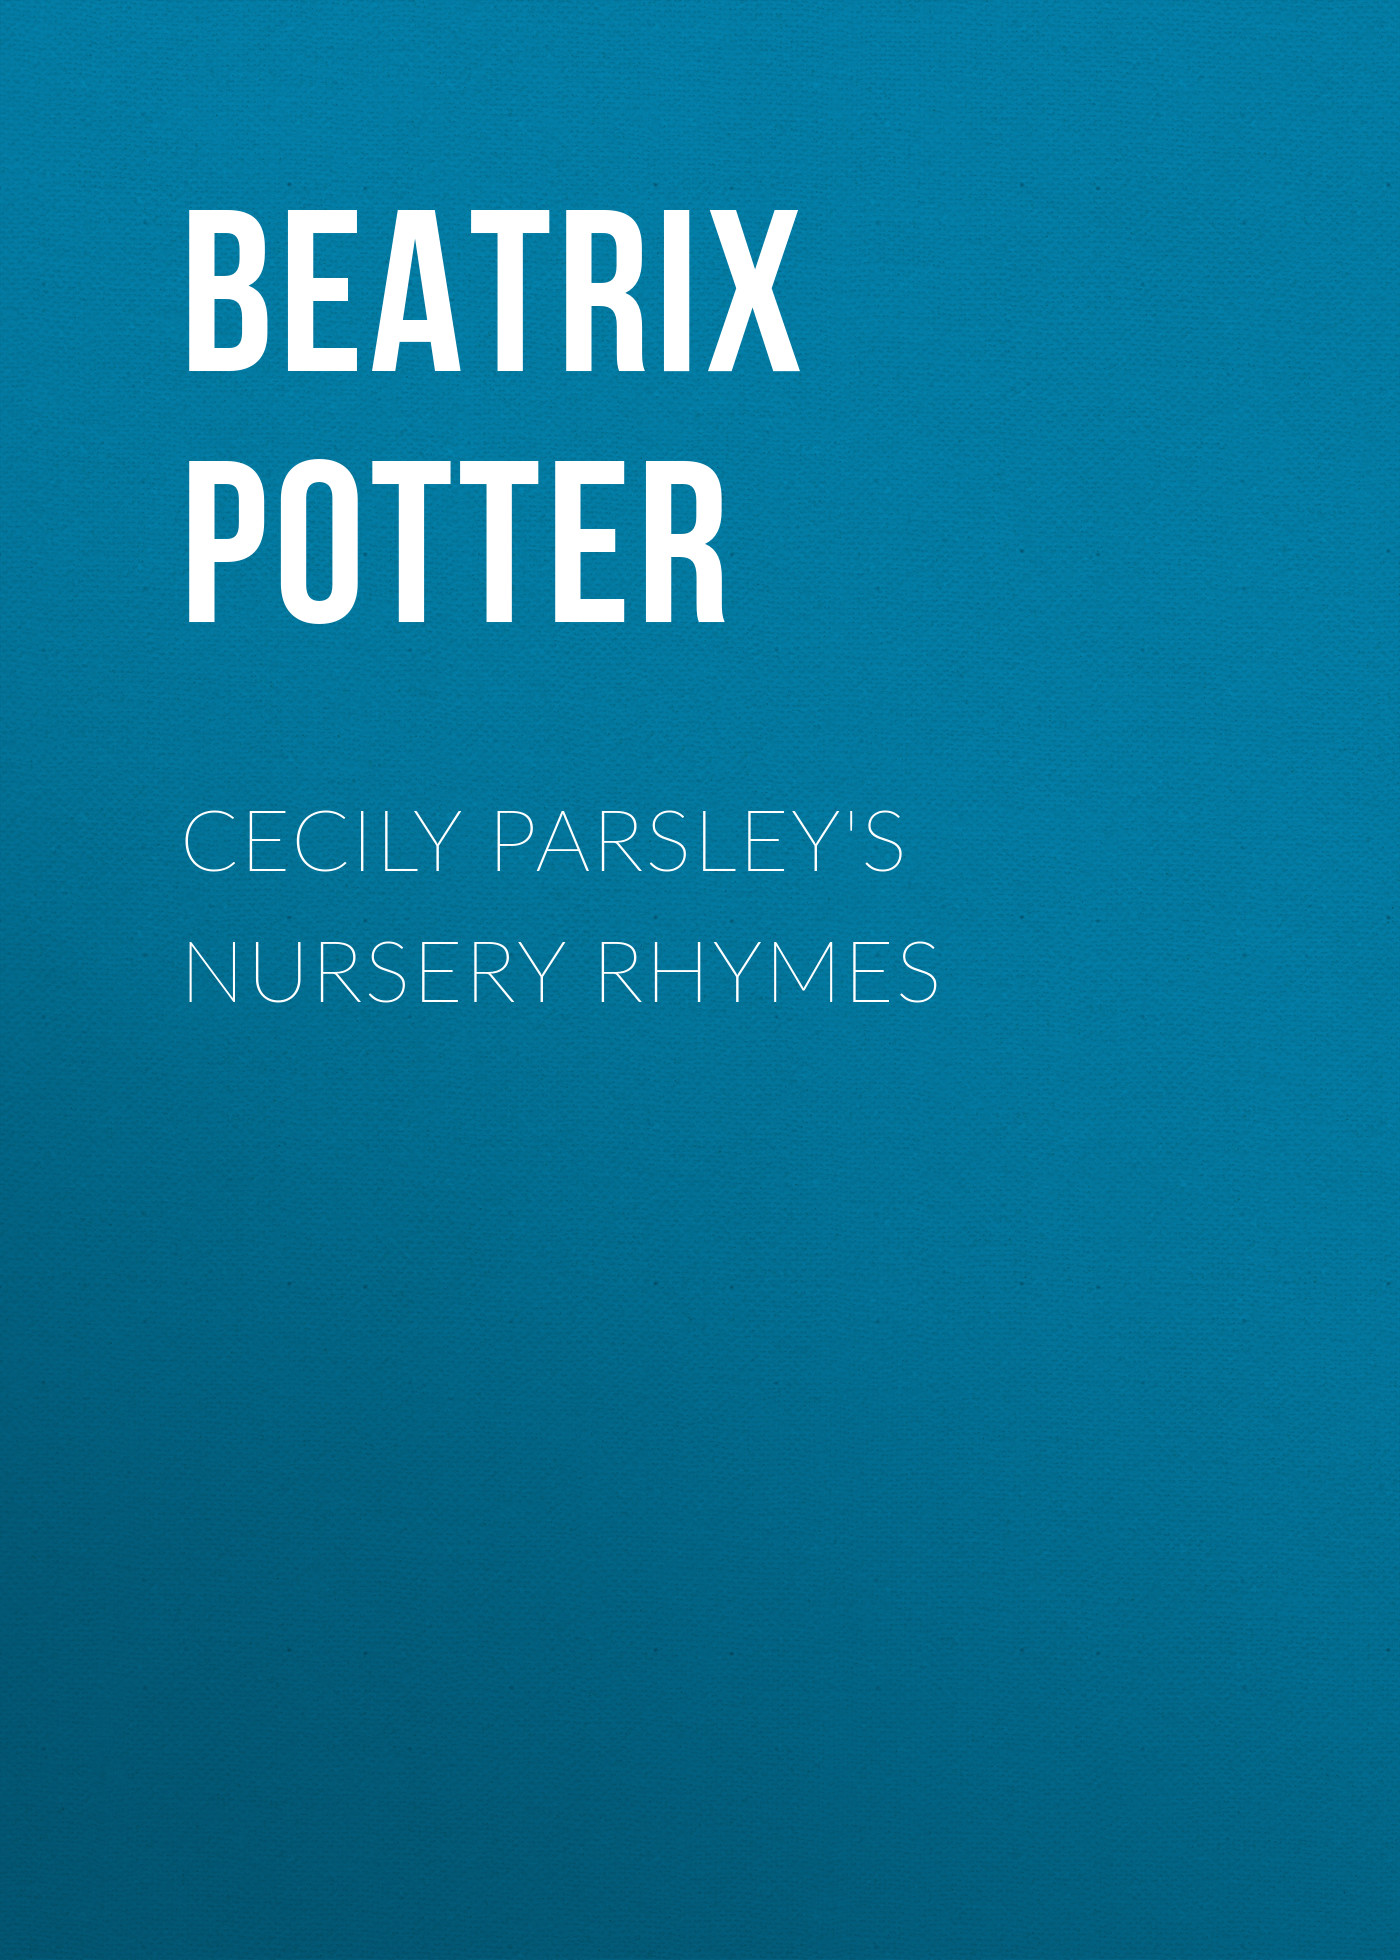 Беатрис Поттер Cecily Parsley's Nursery Rhymes